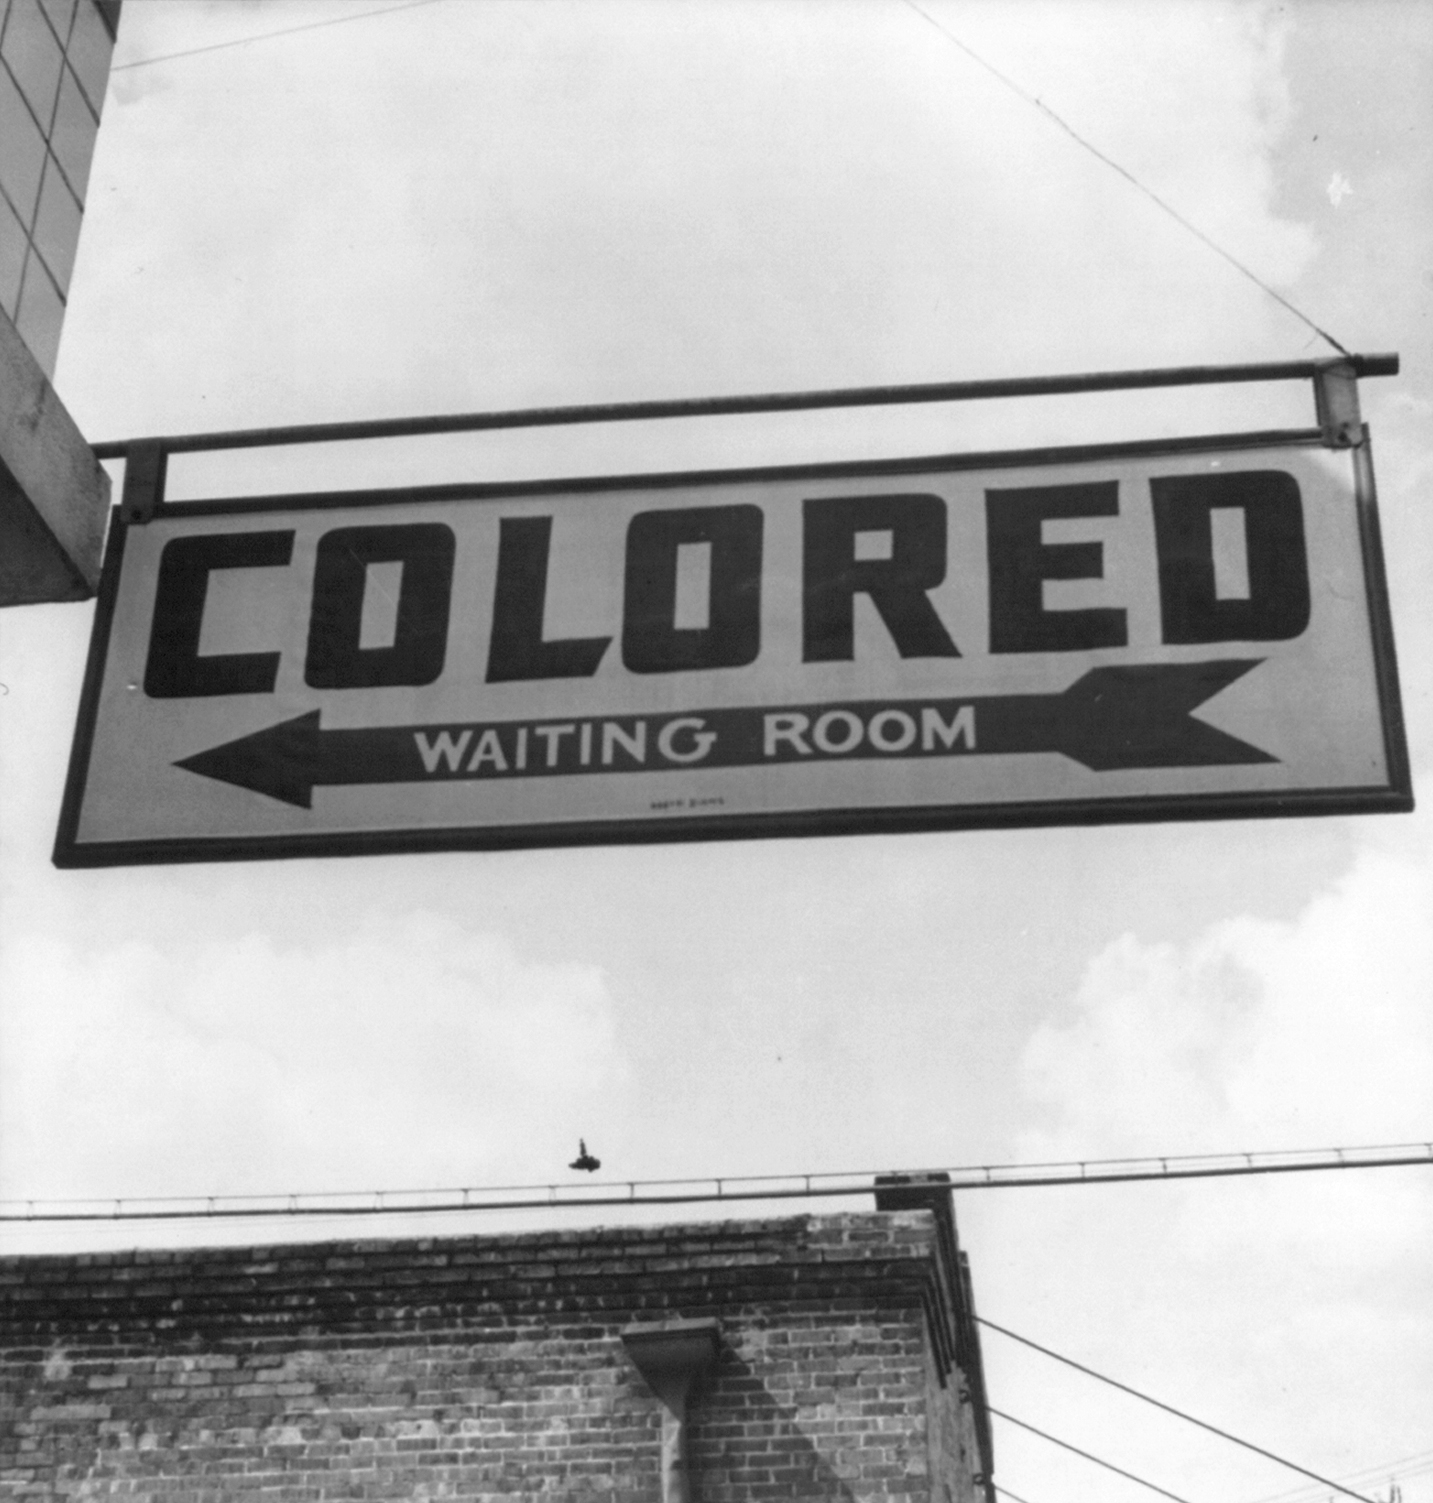 external image 1943_Colored_Waiting_Room_Sign.jpg